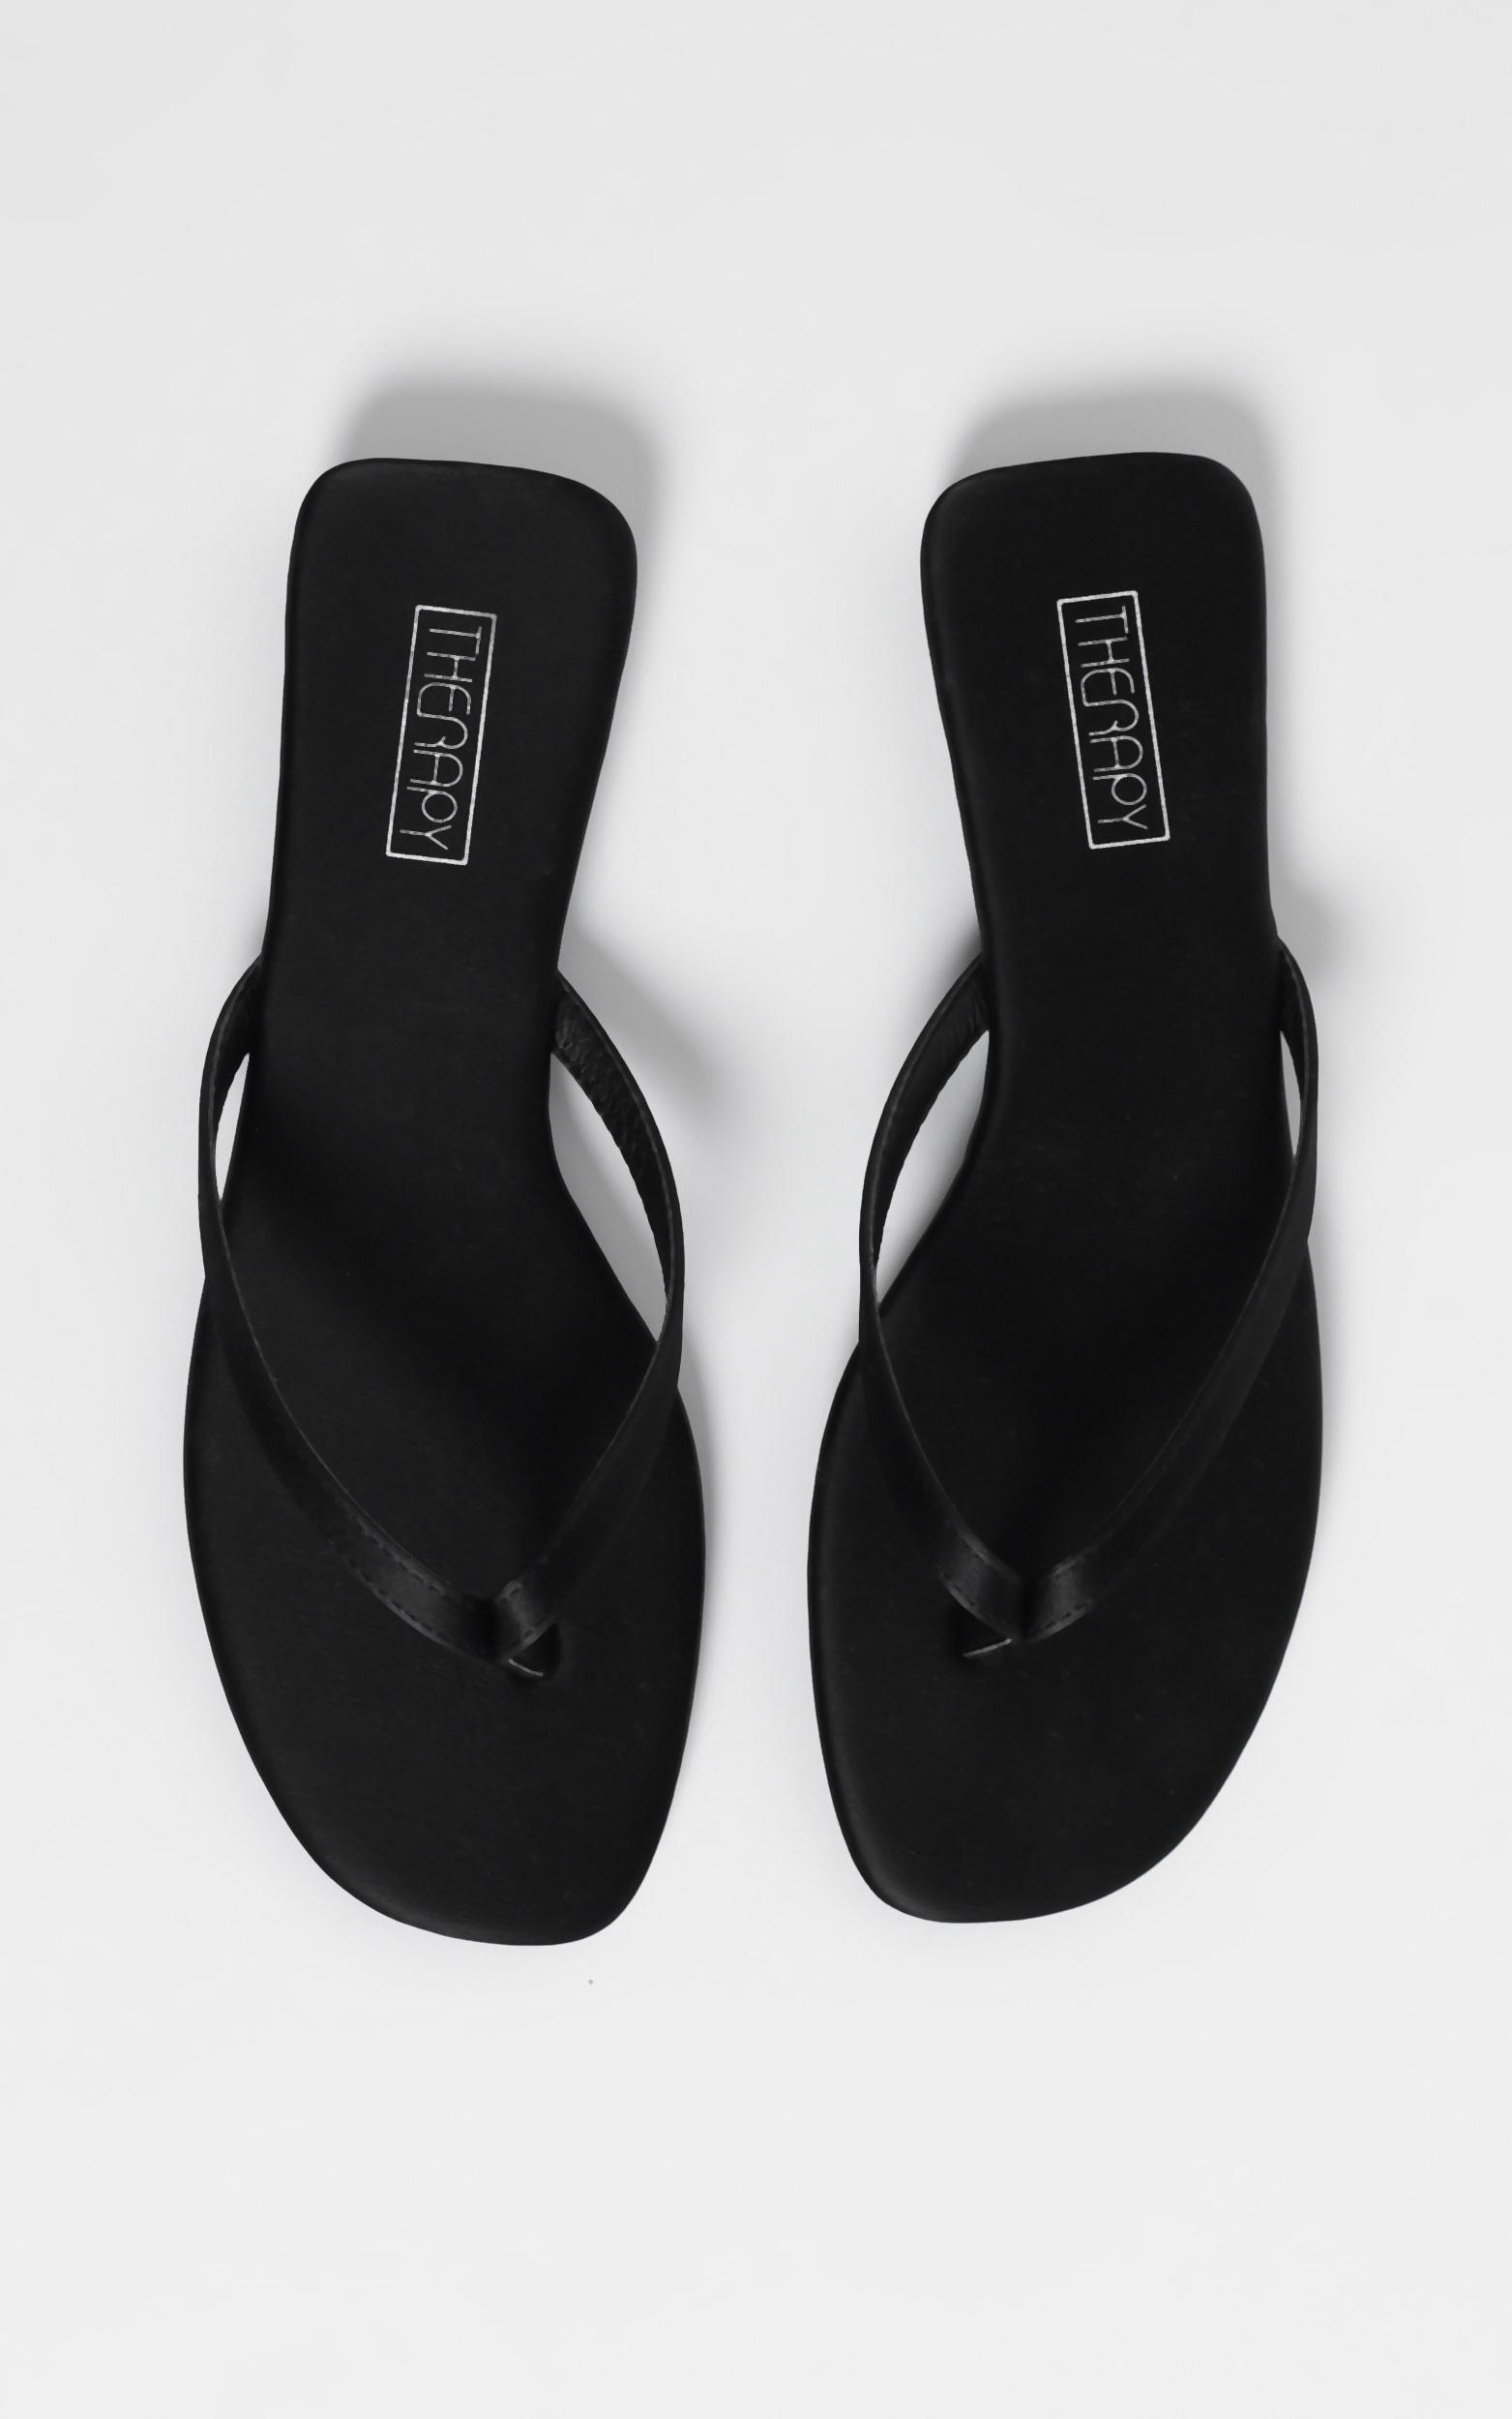 Therapy - Siena Sandals in Black - 5, Black, hi-res image number null